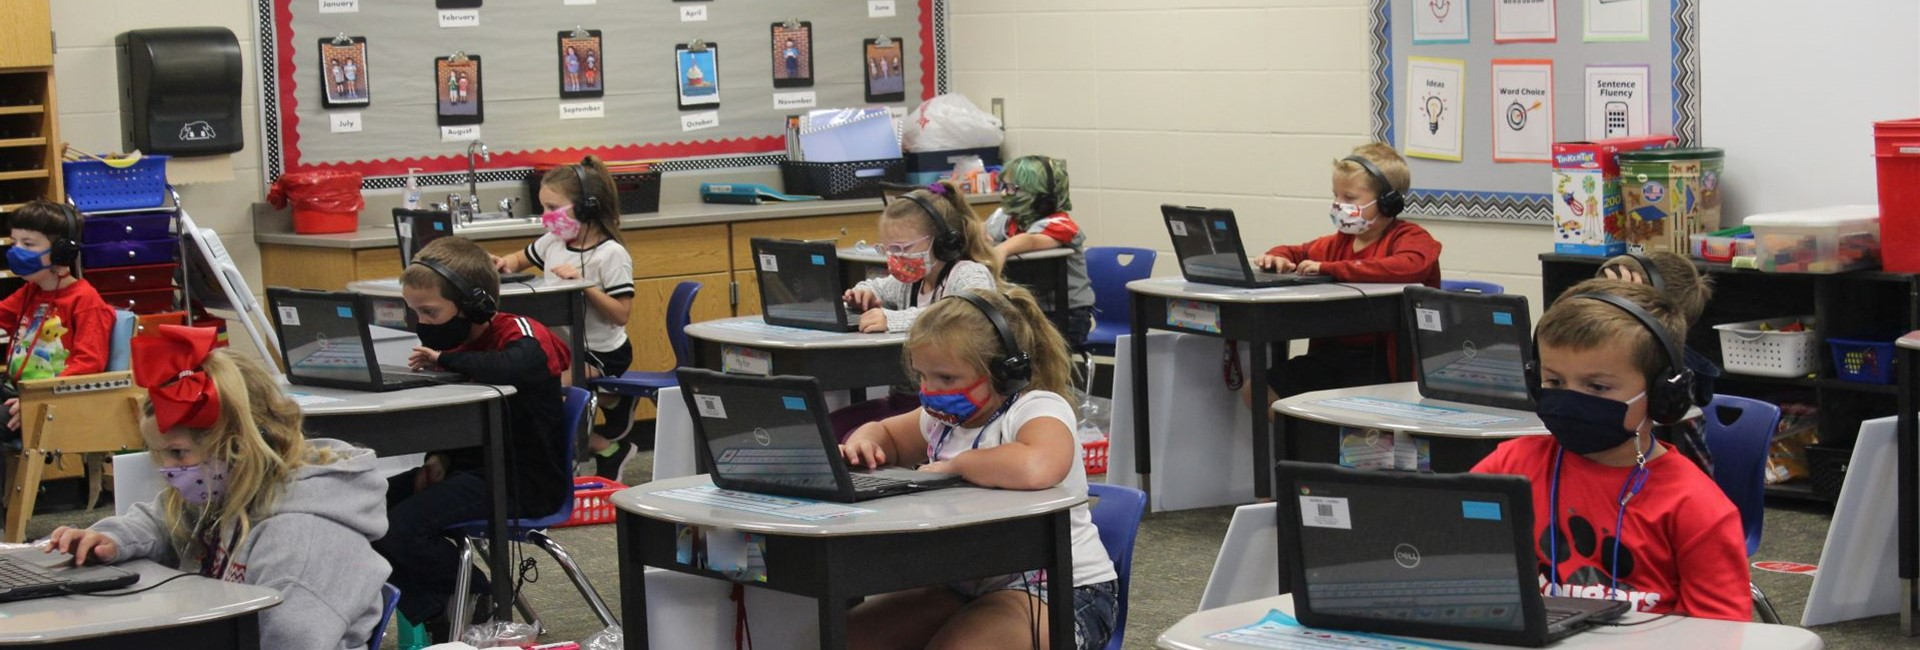 Look at these First Graders - they are aWESome on their Chromebooks! Mrs. Hazlett - your class rocks!